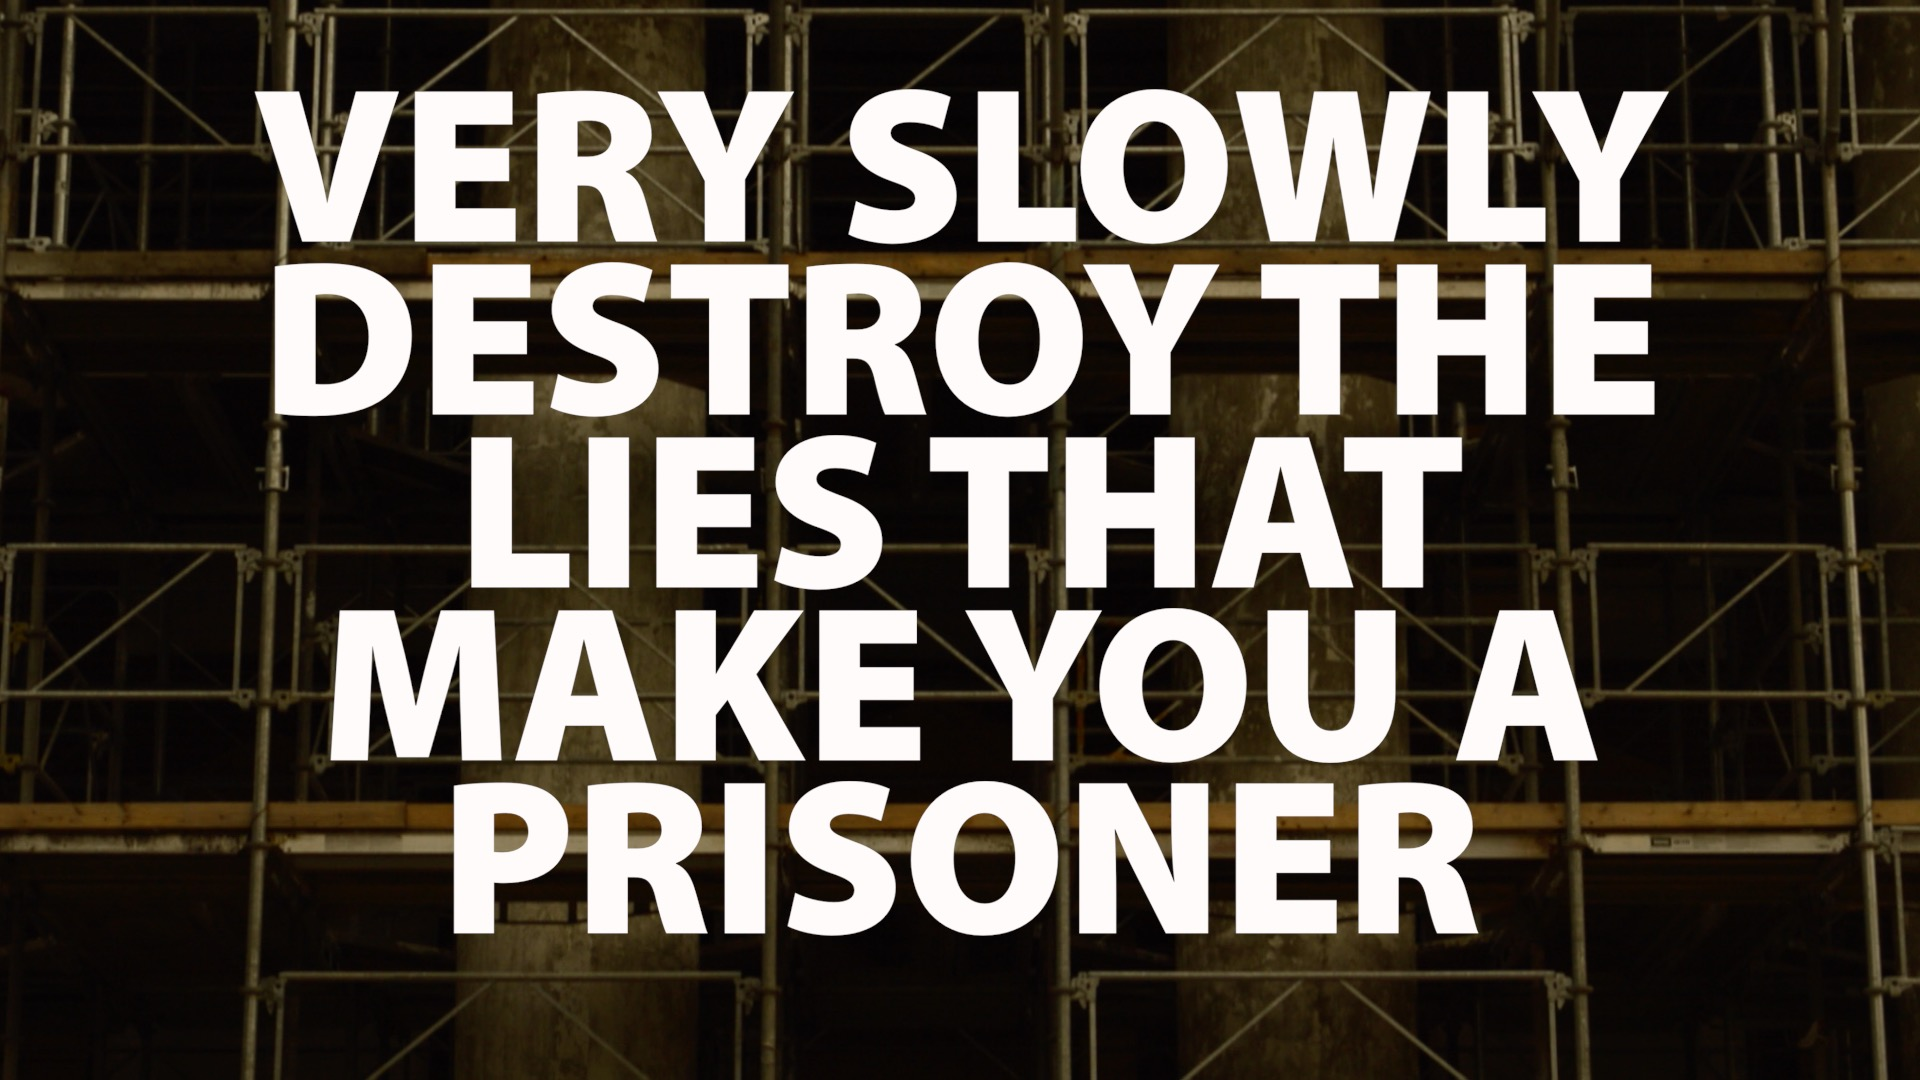 Very Slowly Destroy the Lies that Make You a Prisoner